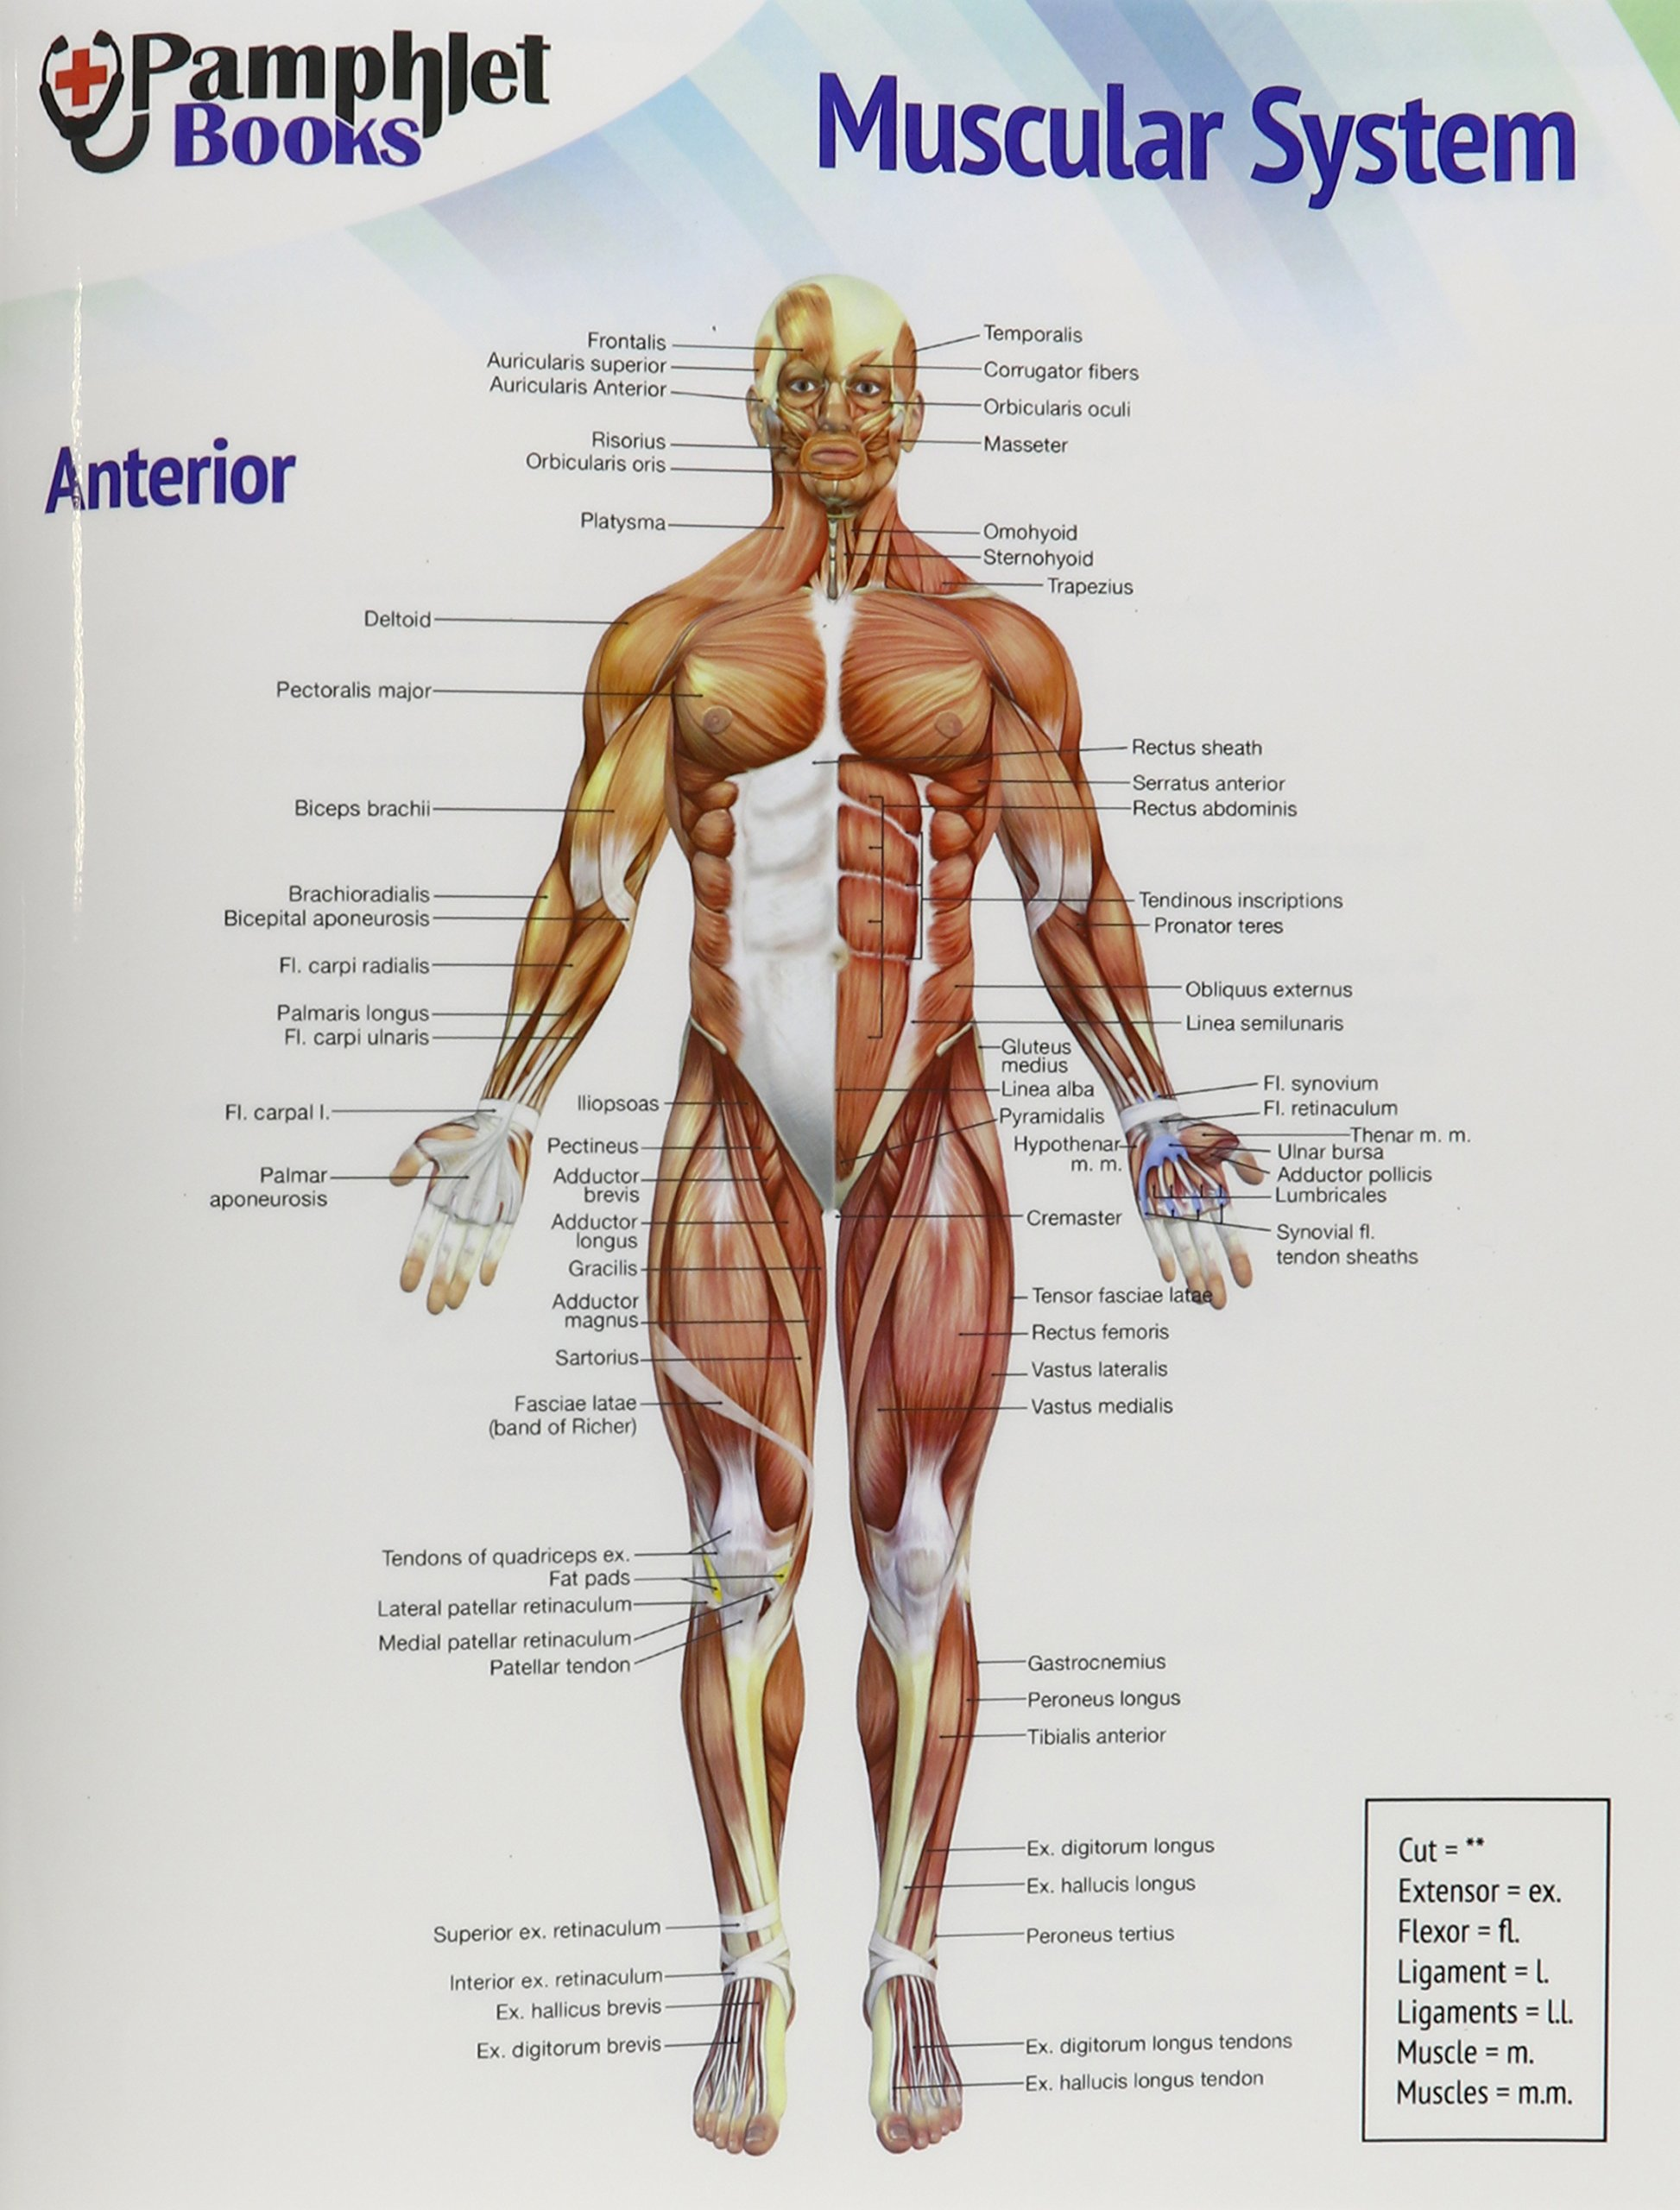 Muscular System Pamphlet Brochure Quickly Learn The Human Anatomy